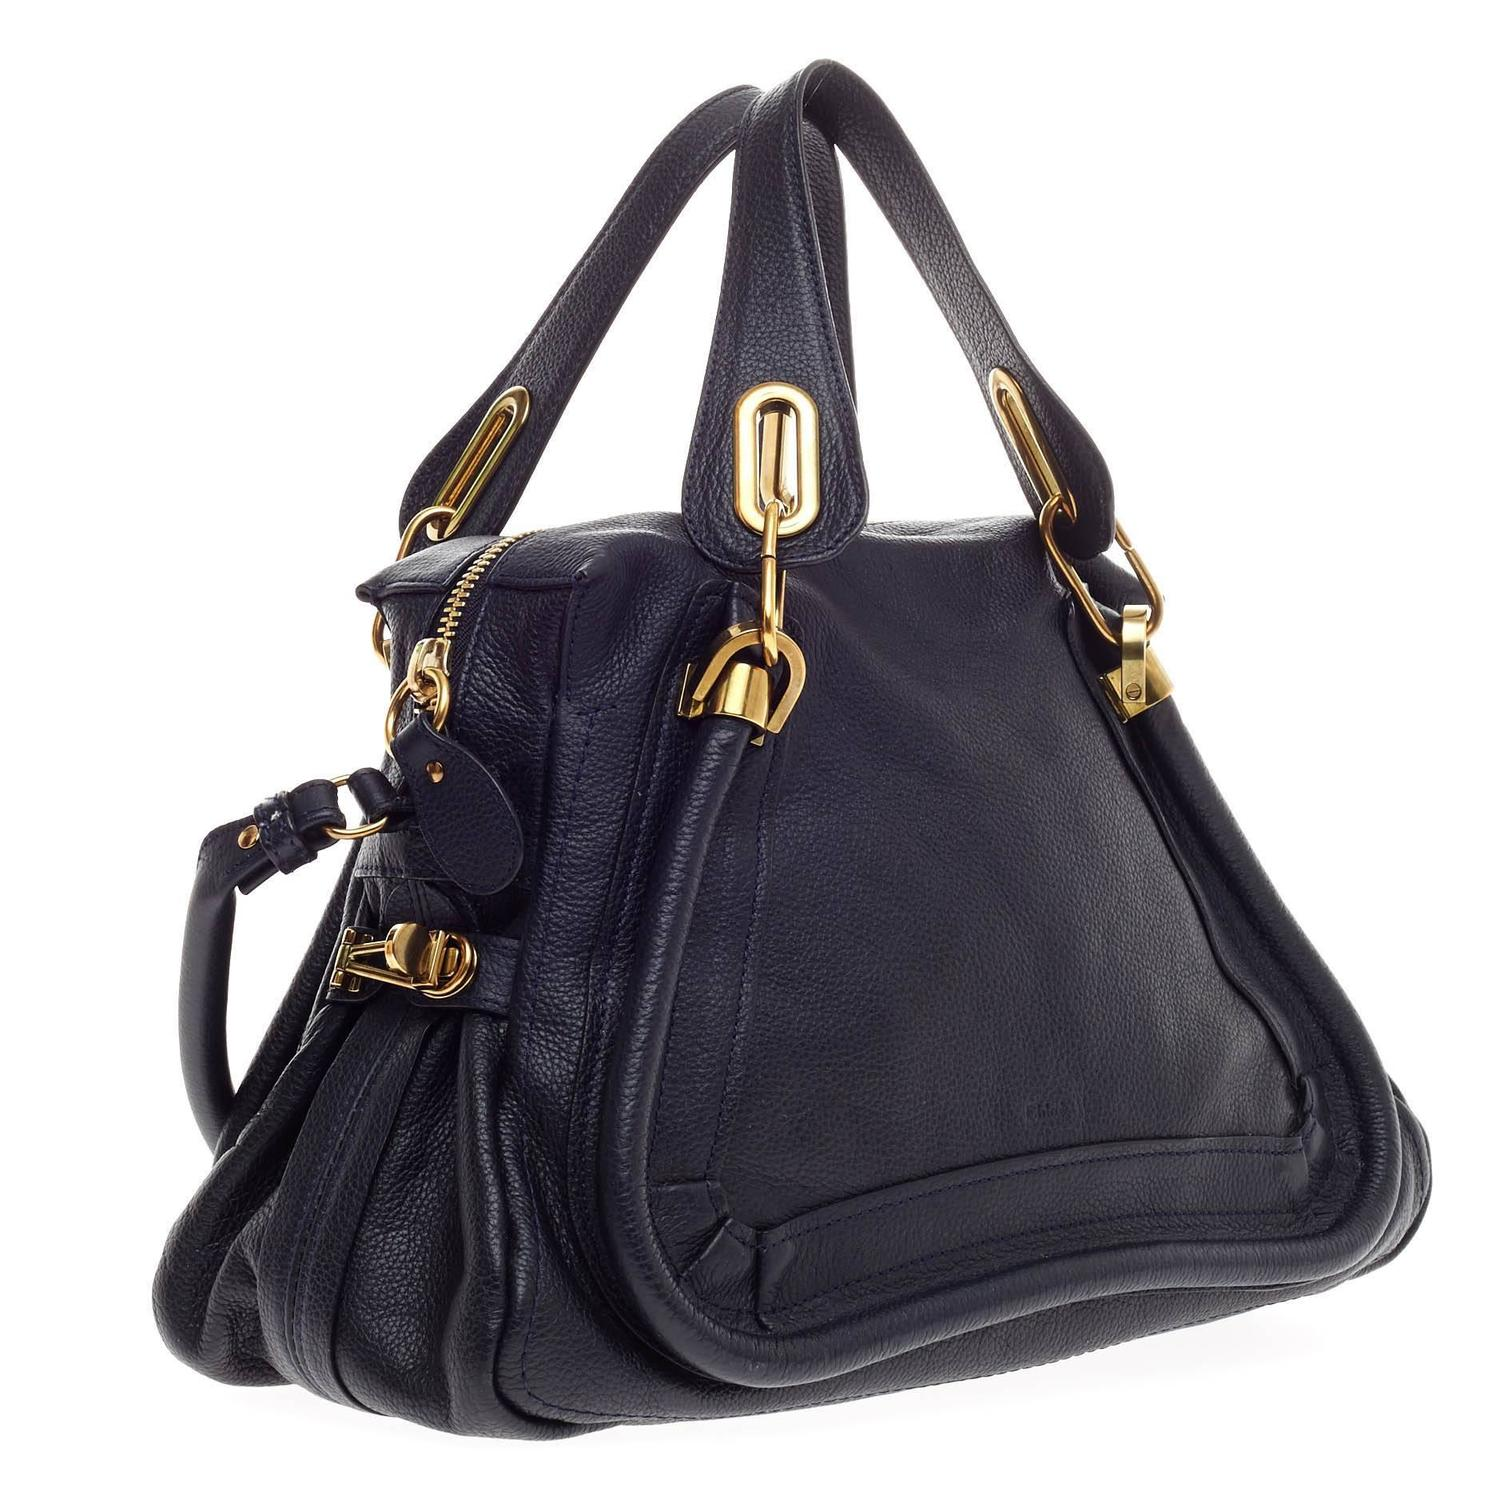 Chloe Paraty Top Handle Bag Leather Medium at 1stdibs